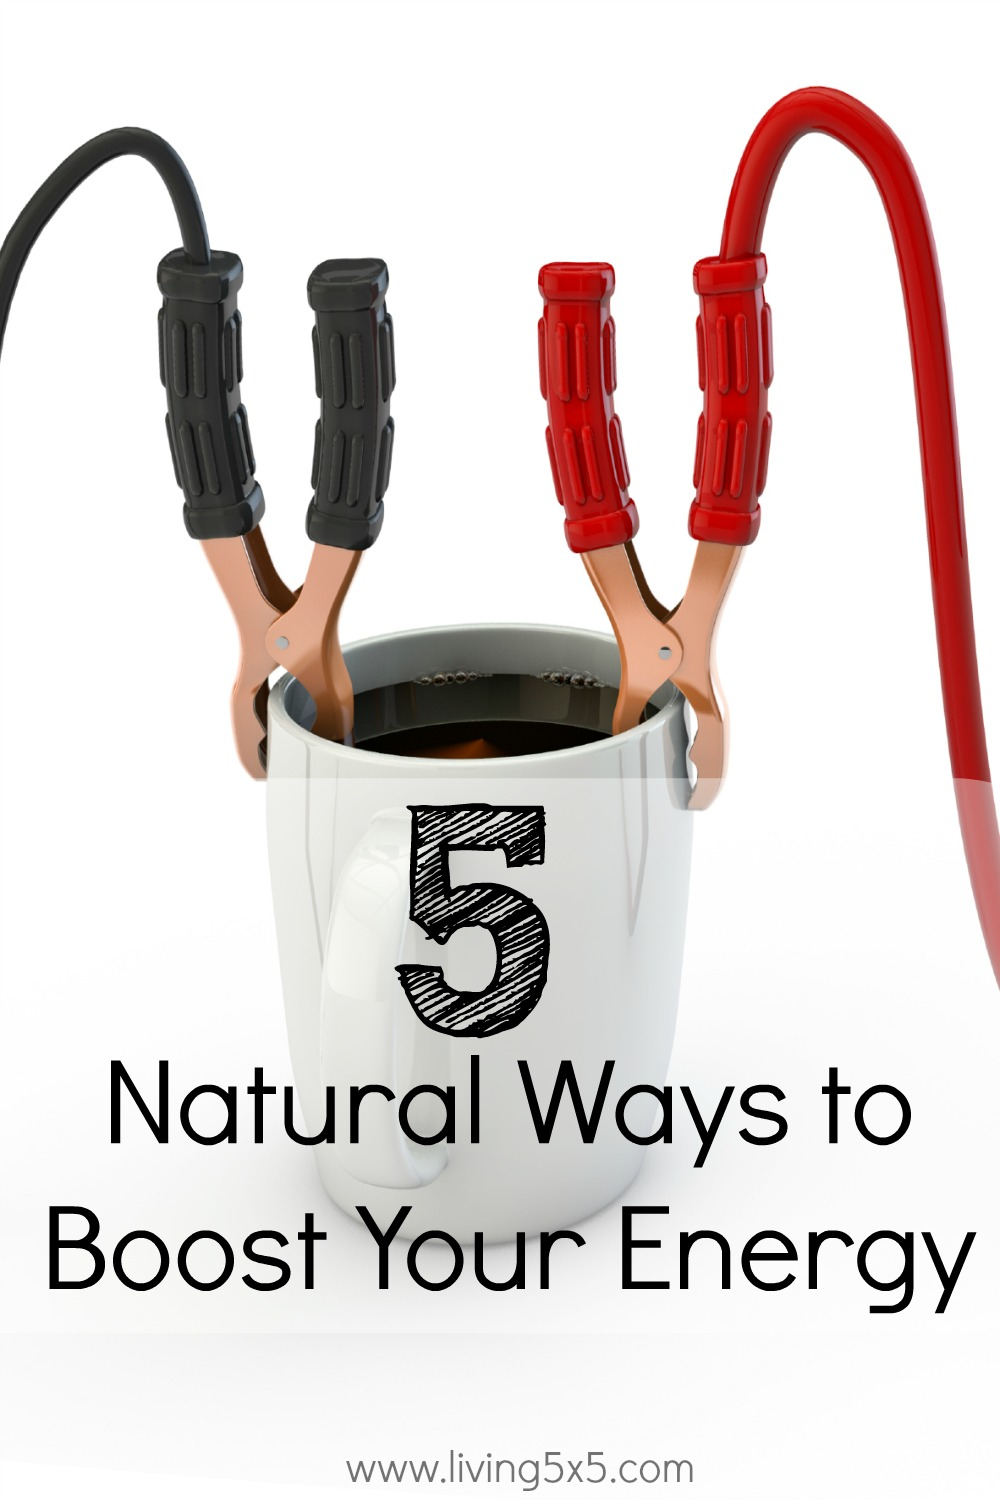 Wondering if you can change your low energy levels? Get 5 Natural Ways to Boost Your Energy Levels that may benefit you!